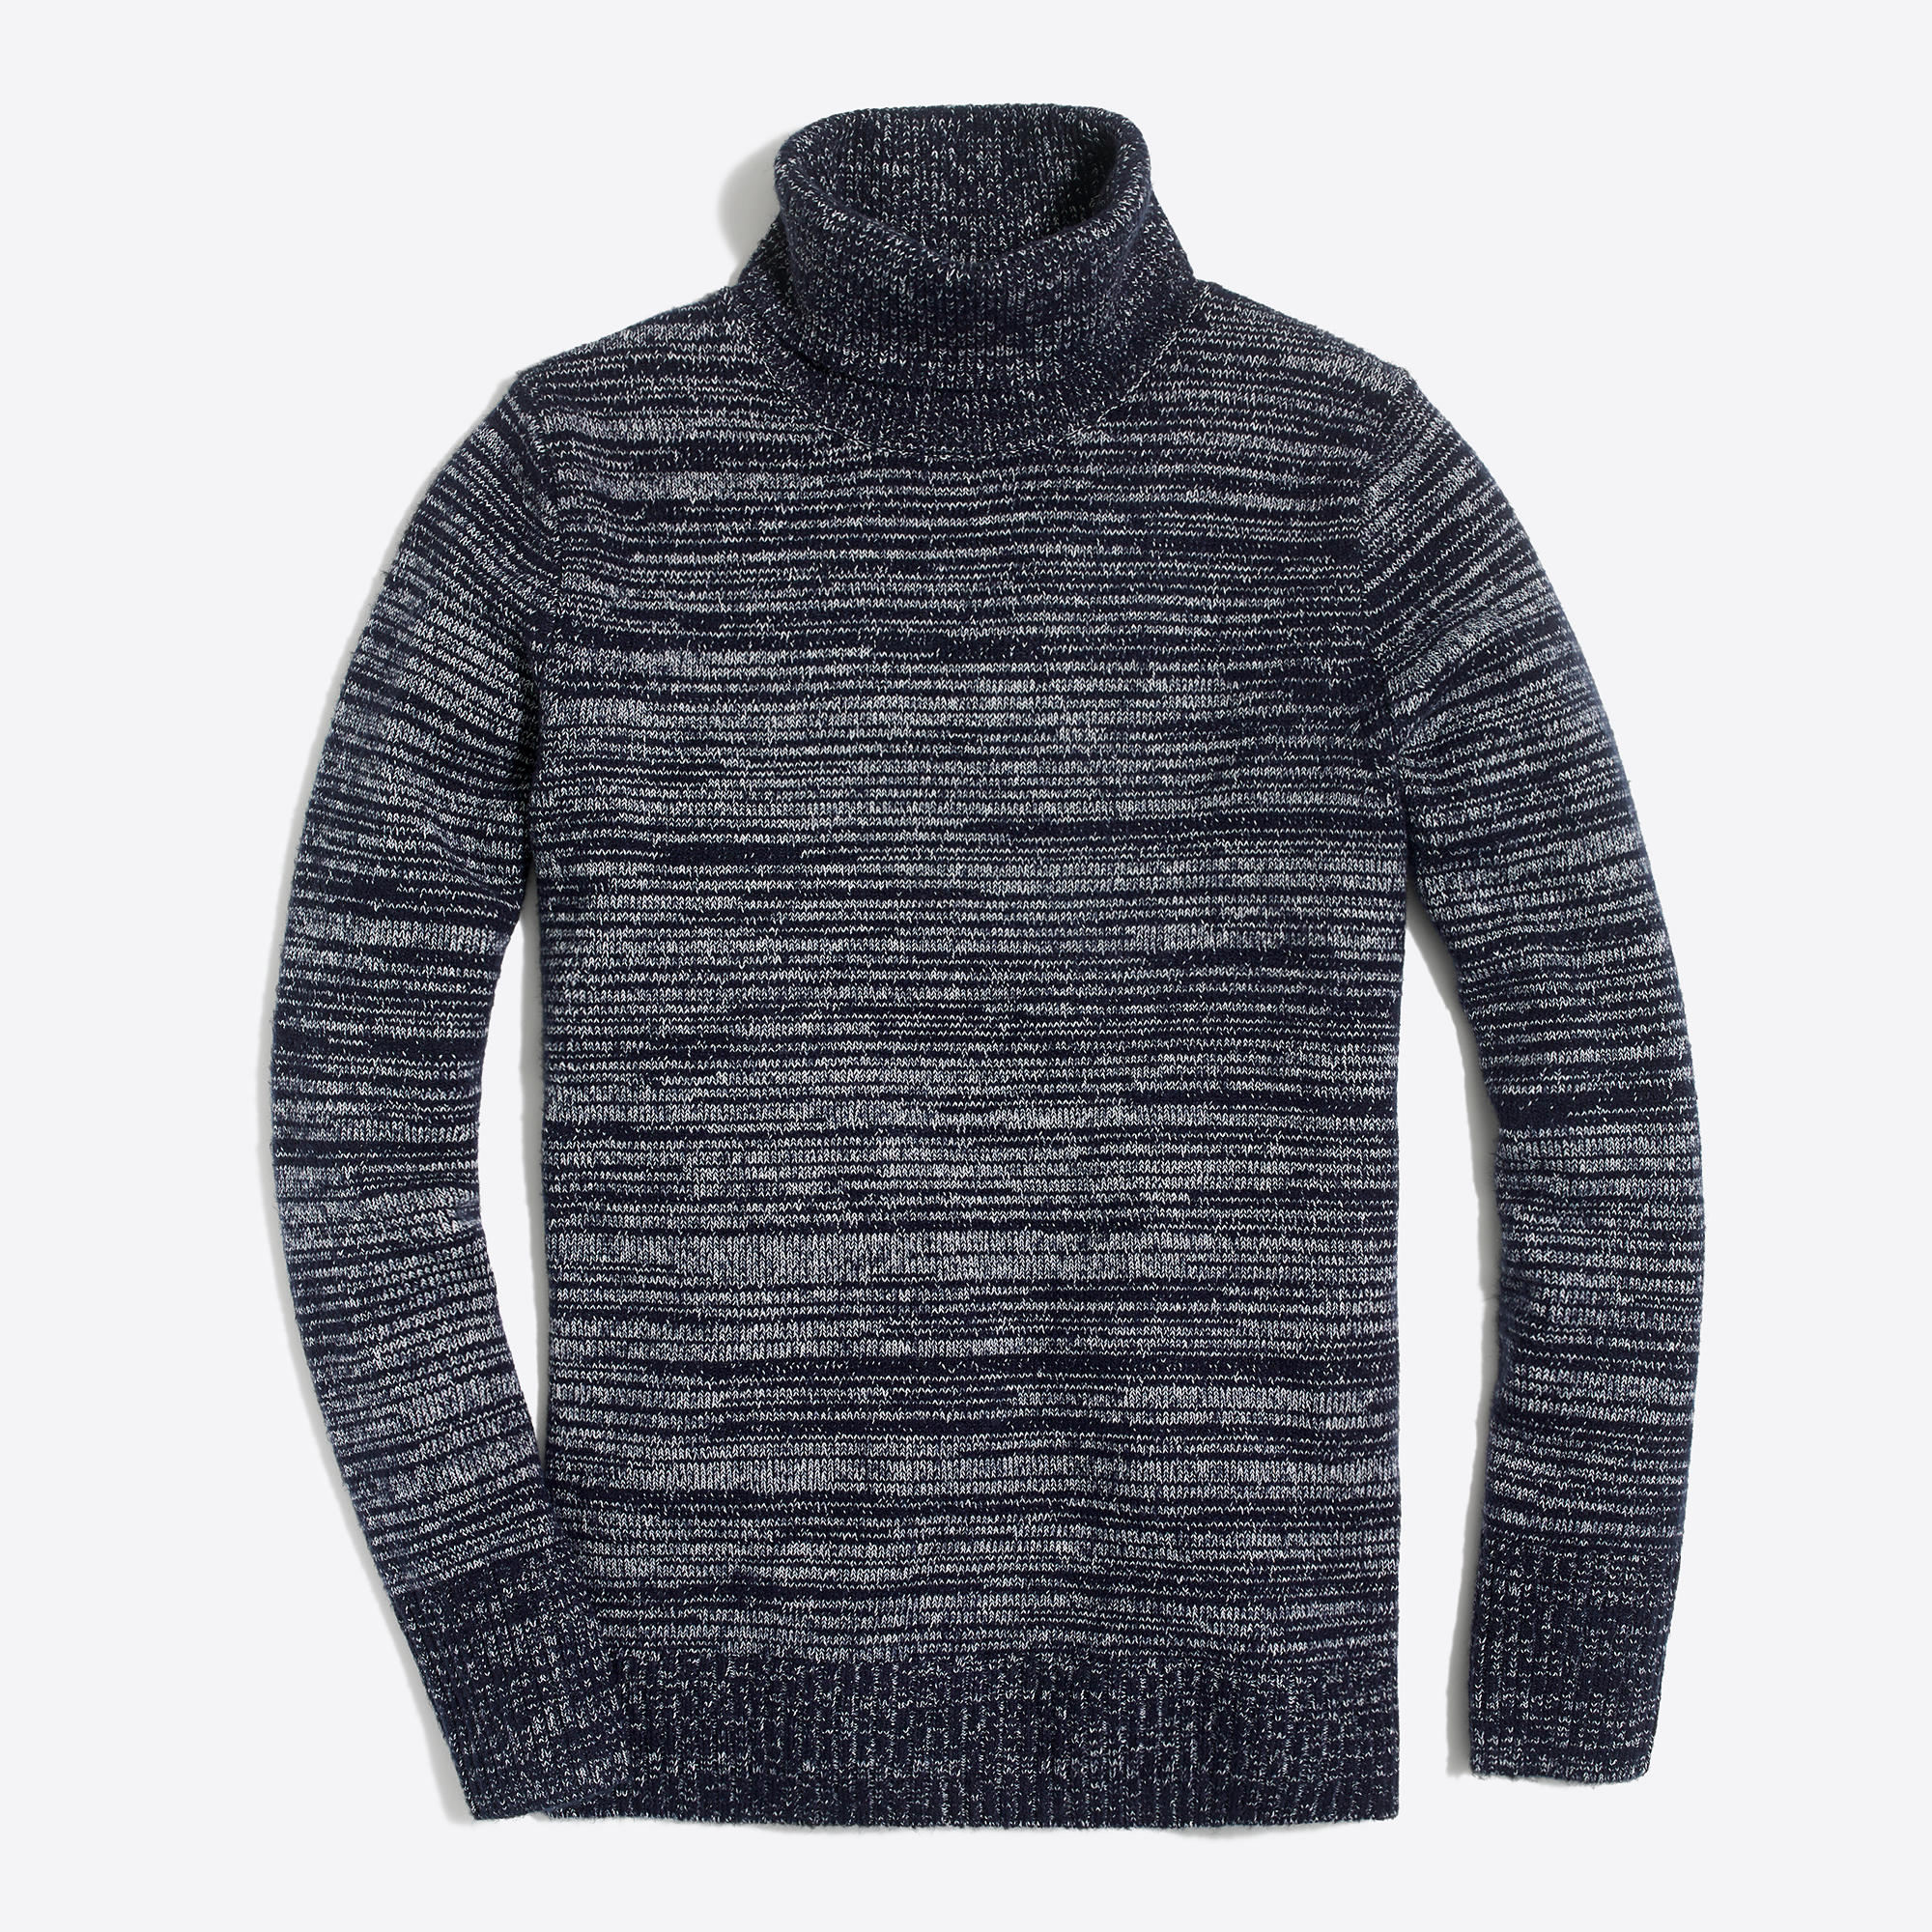 Women's Sweaters : Cardigans & Pullovers | J.Crew Factory